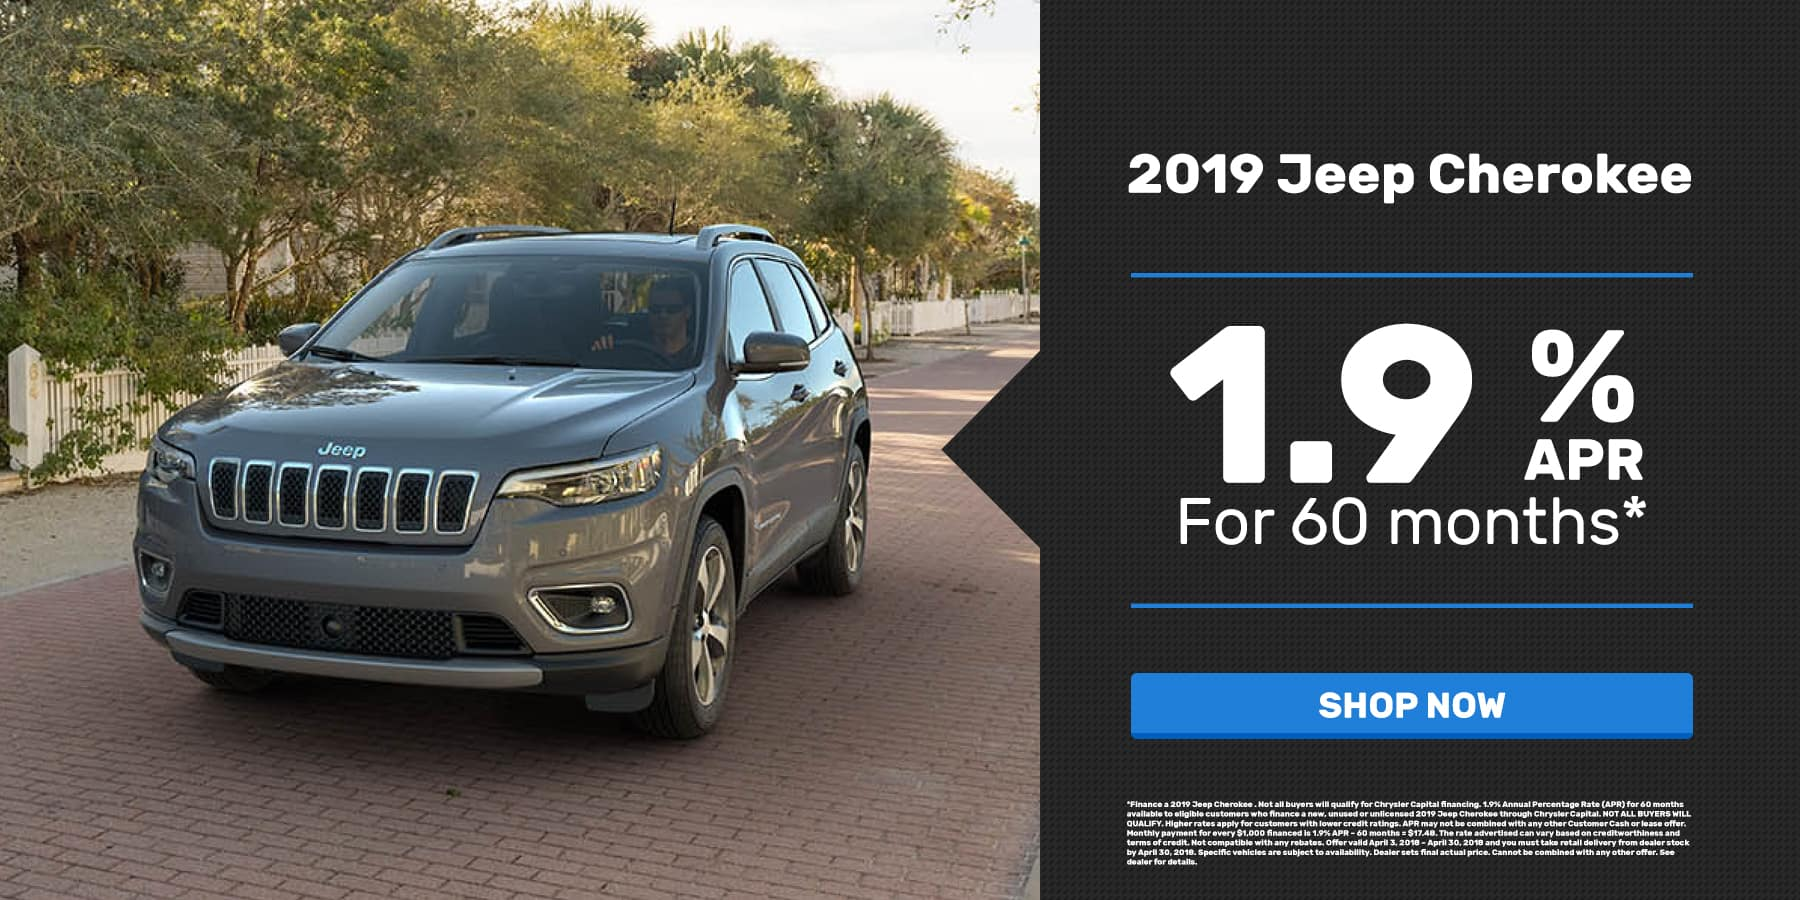 2019 Jeep Cherokee discount in OKC